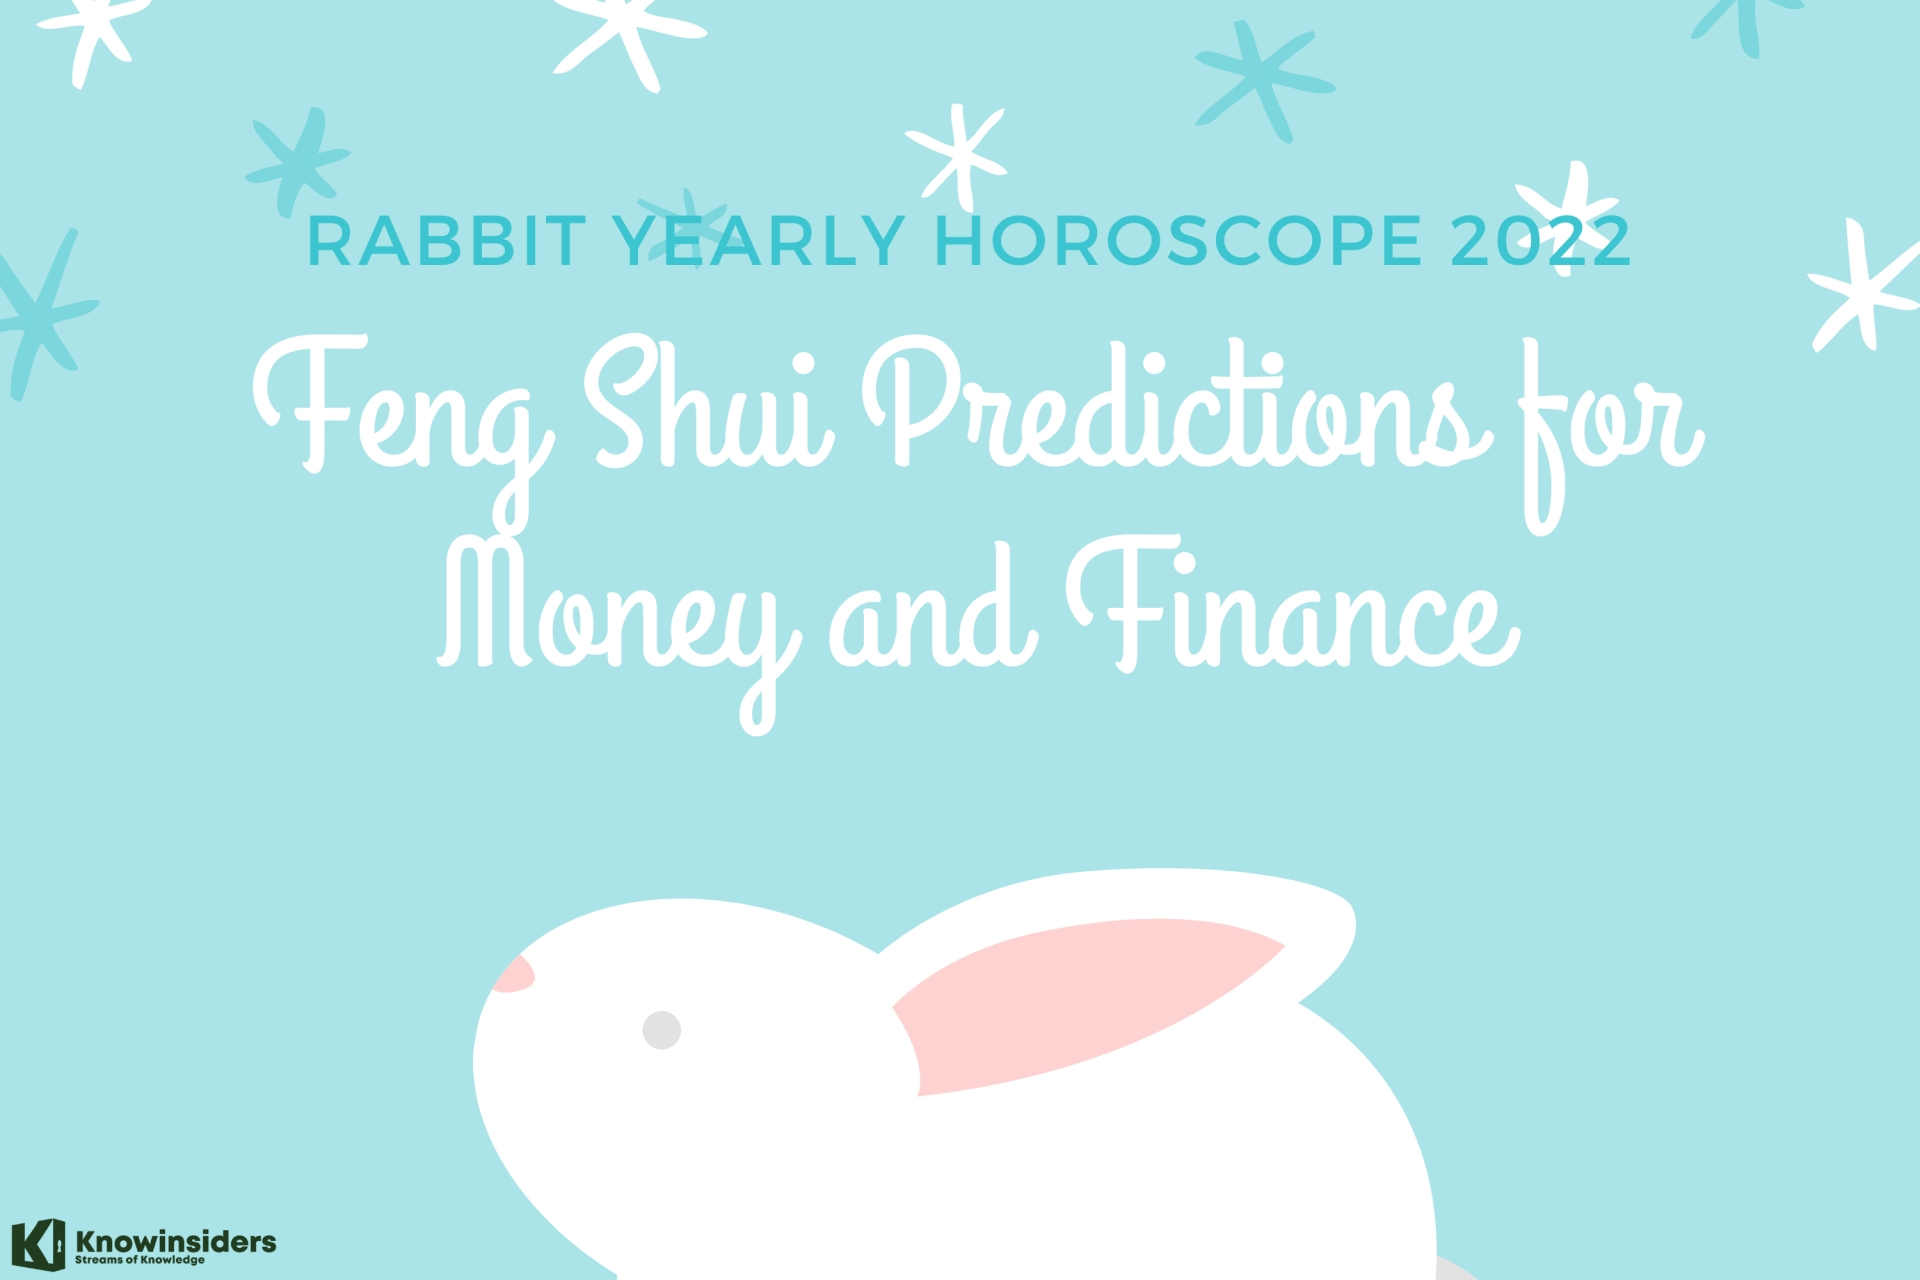 Rabbit Yearly Horoscope 2022: Feng Shui Prediction For Money and Finance